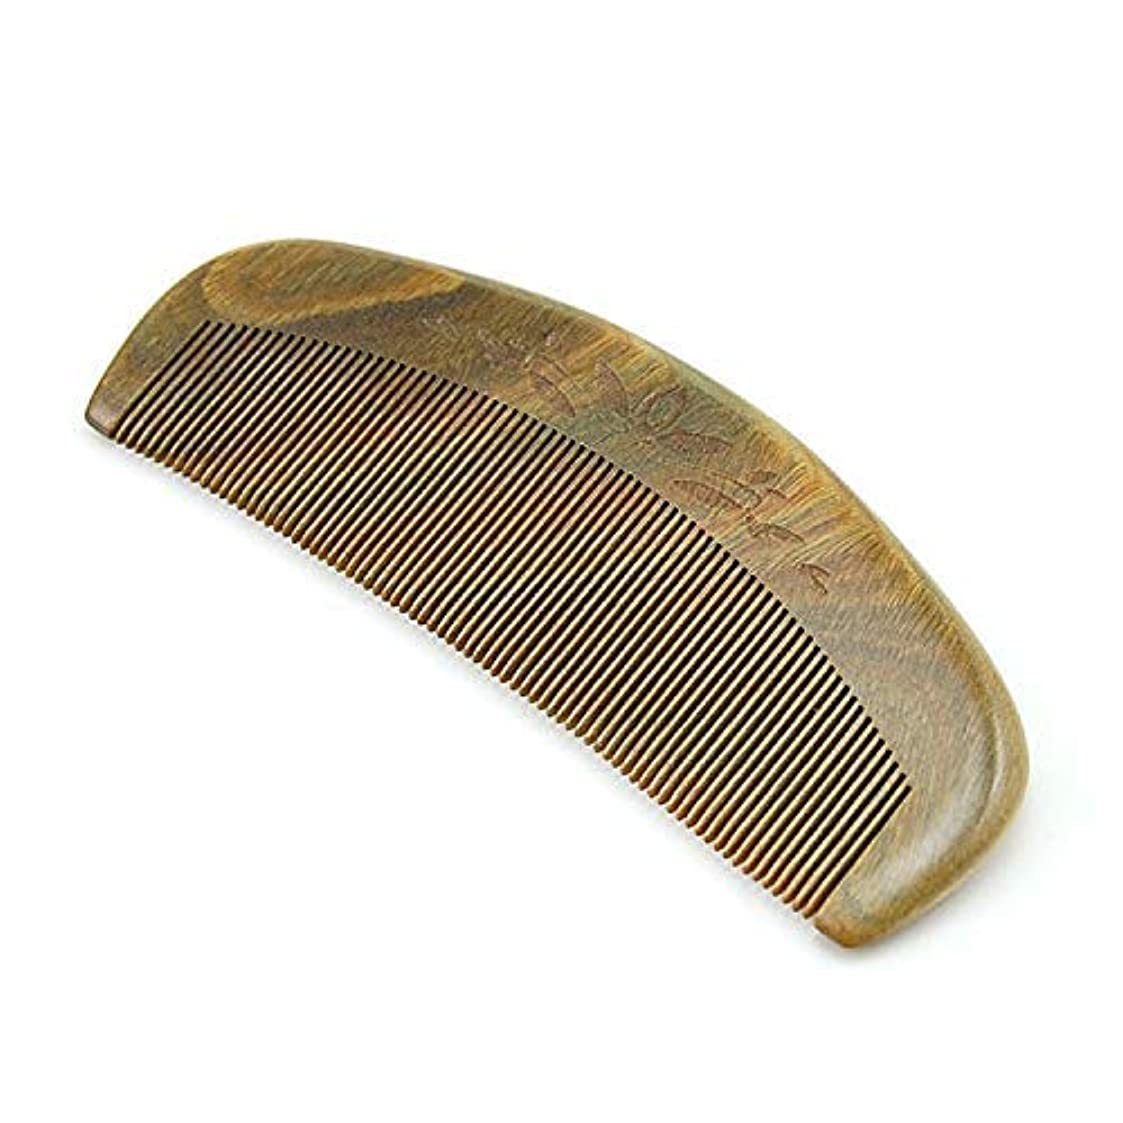 警察投資するポーチBrand New and Natural Green Sandalwood Fine Tooth Comb, Anti Static Pocket Wooden Comb [並行輸入品]